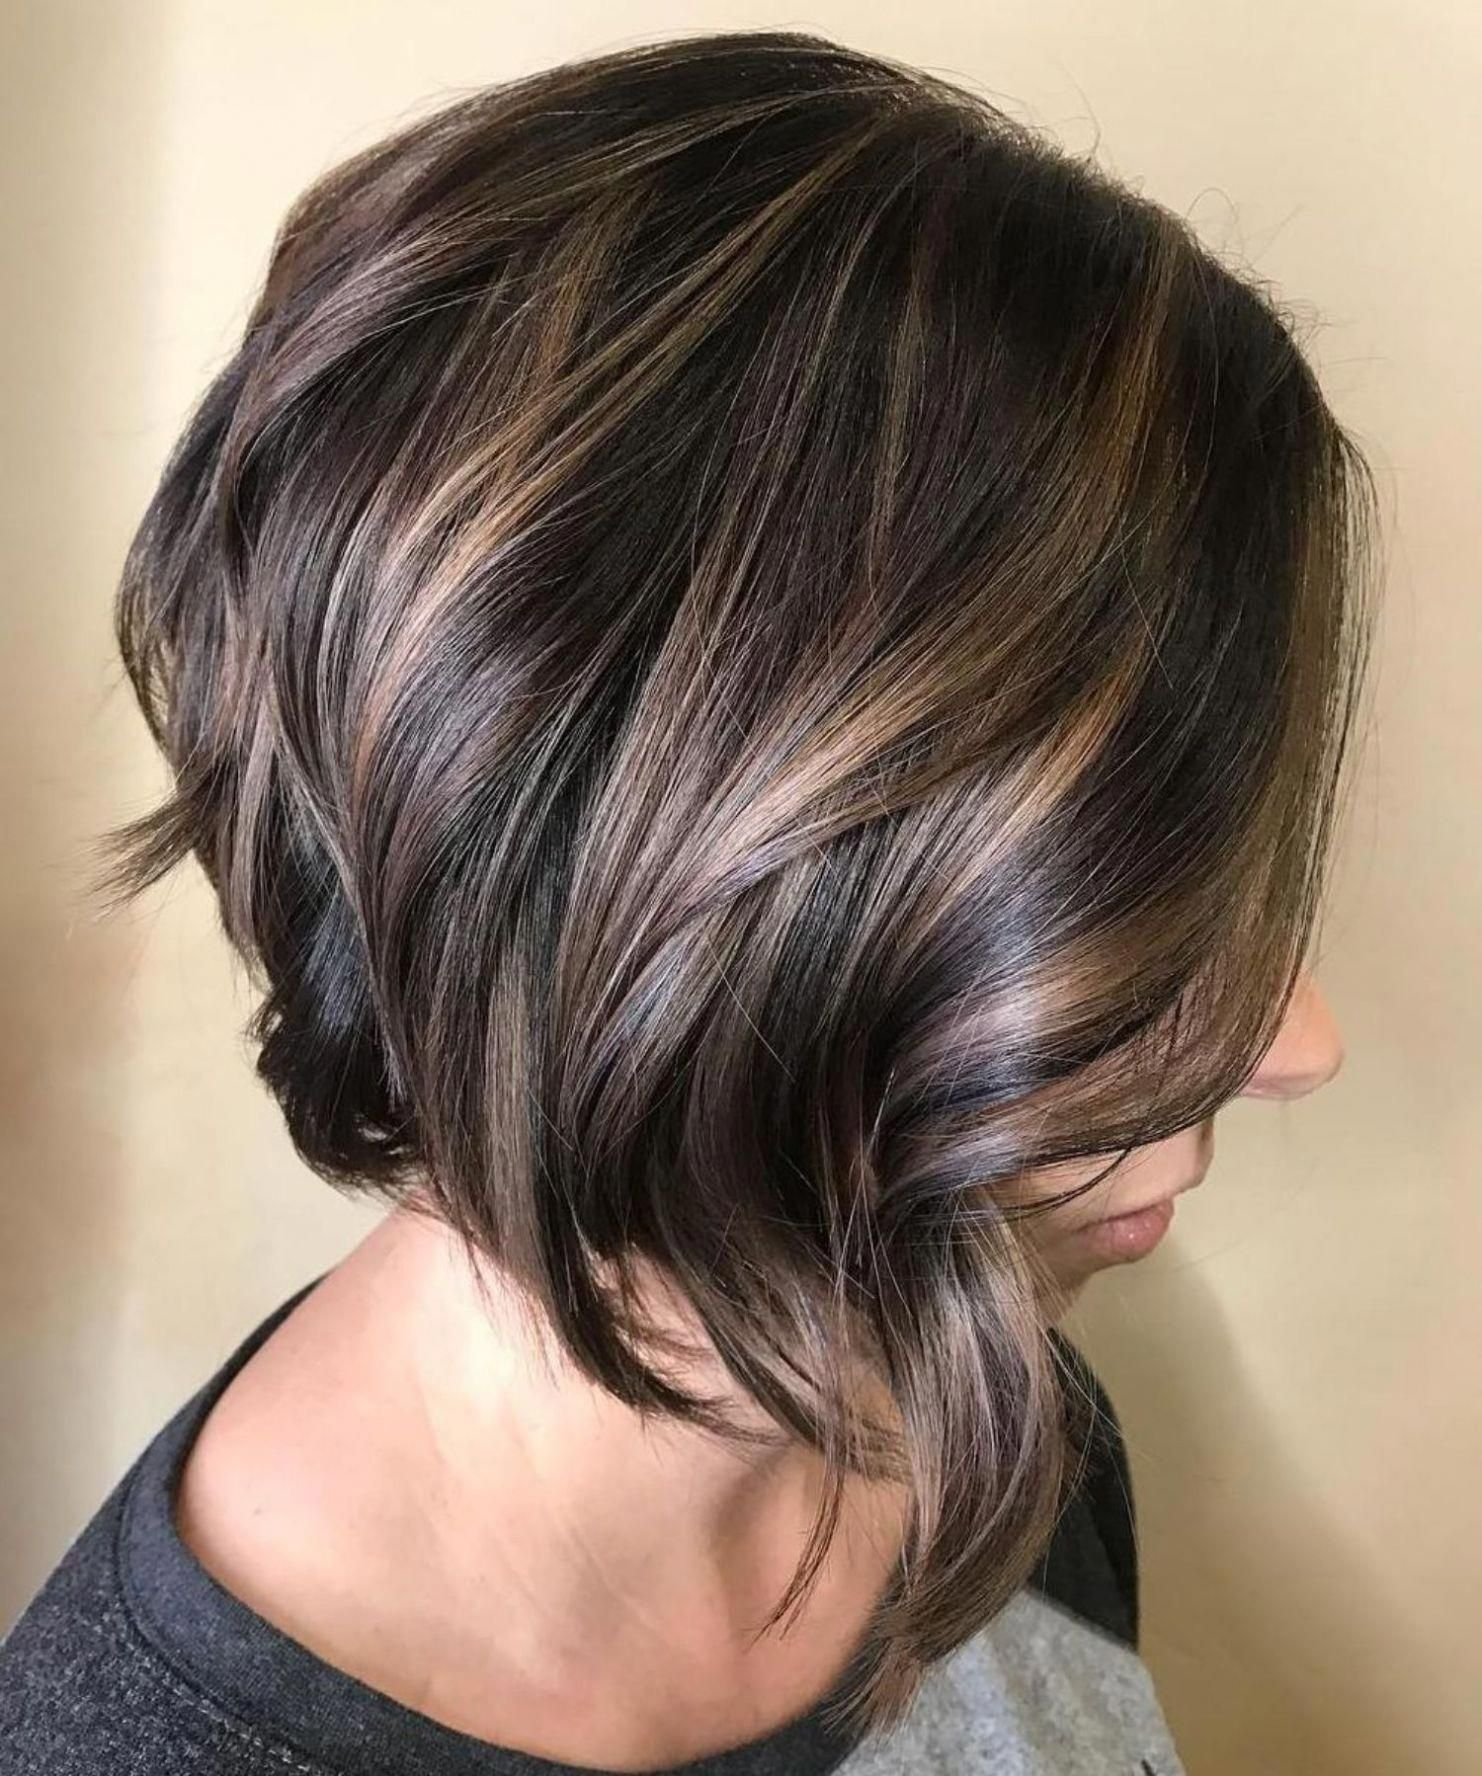 Brunette Bob With Curled Ends Bobstylehaircuts Hair Styles Choppy Bob Hairstyles Short Hairstyles For Thick Hair